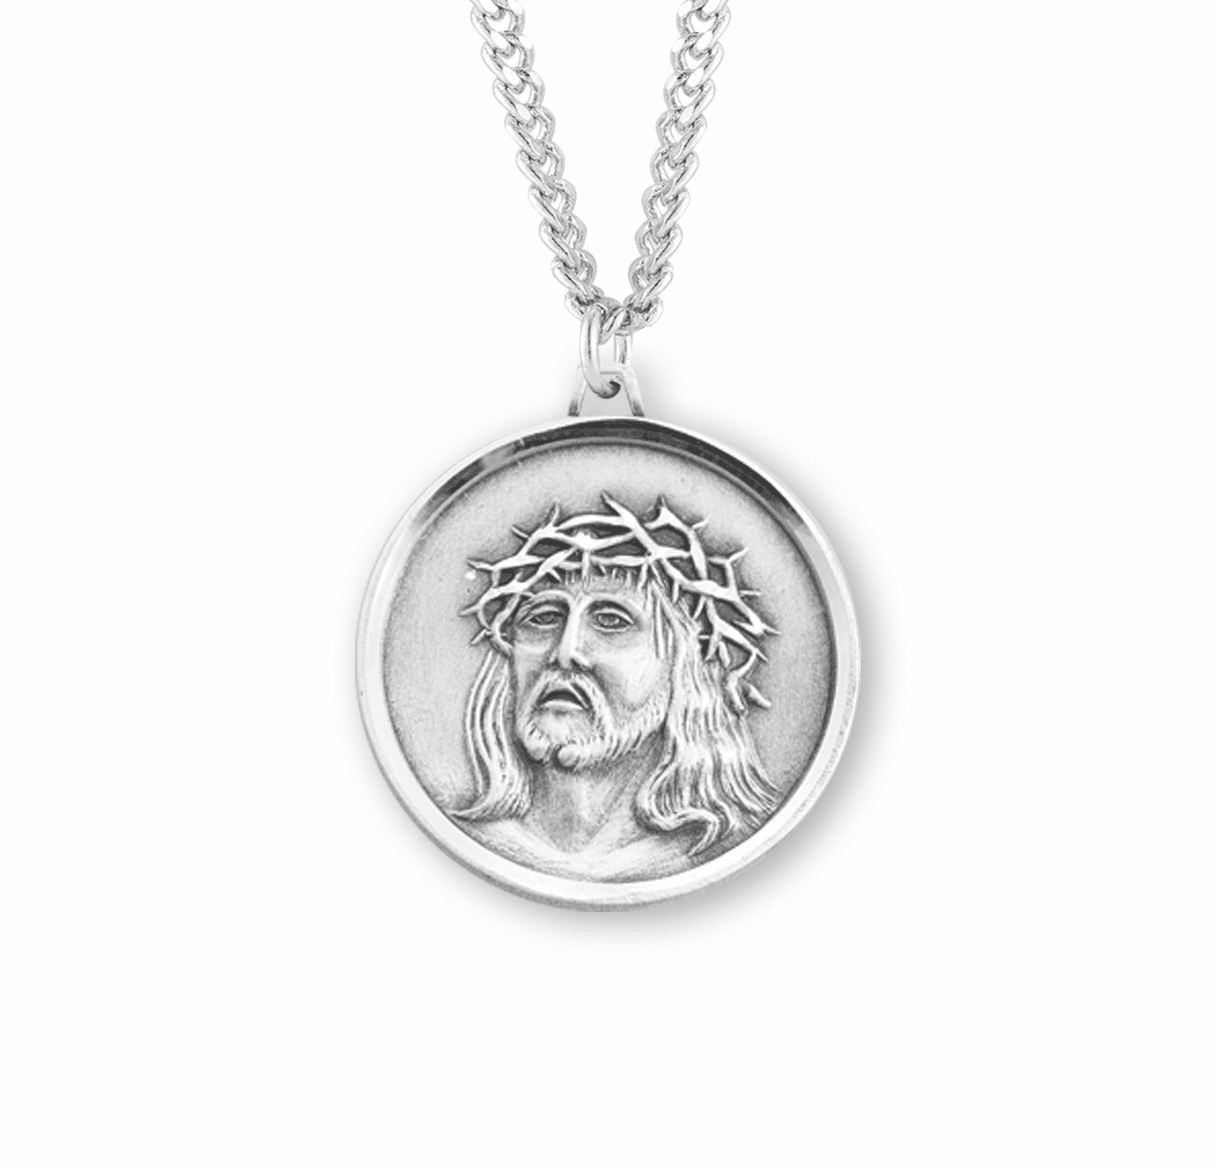 HMH Religious Crown of Throns Jesus Christ in Agony Round Medal Sterling Silver Necklace